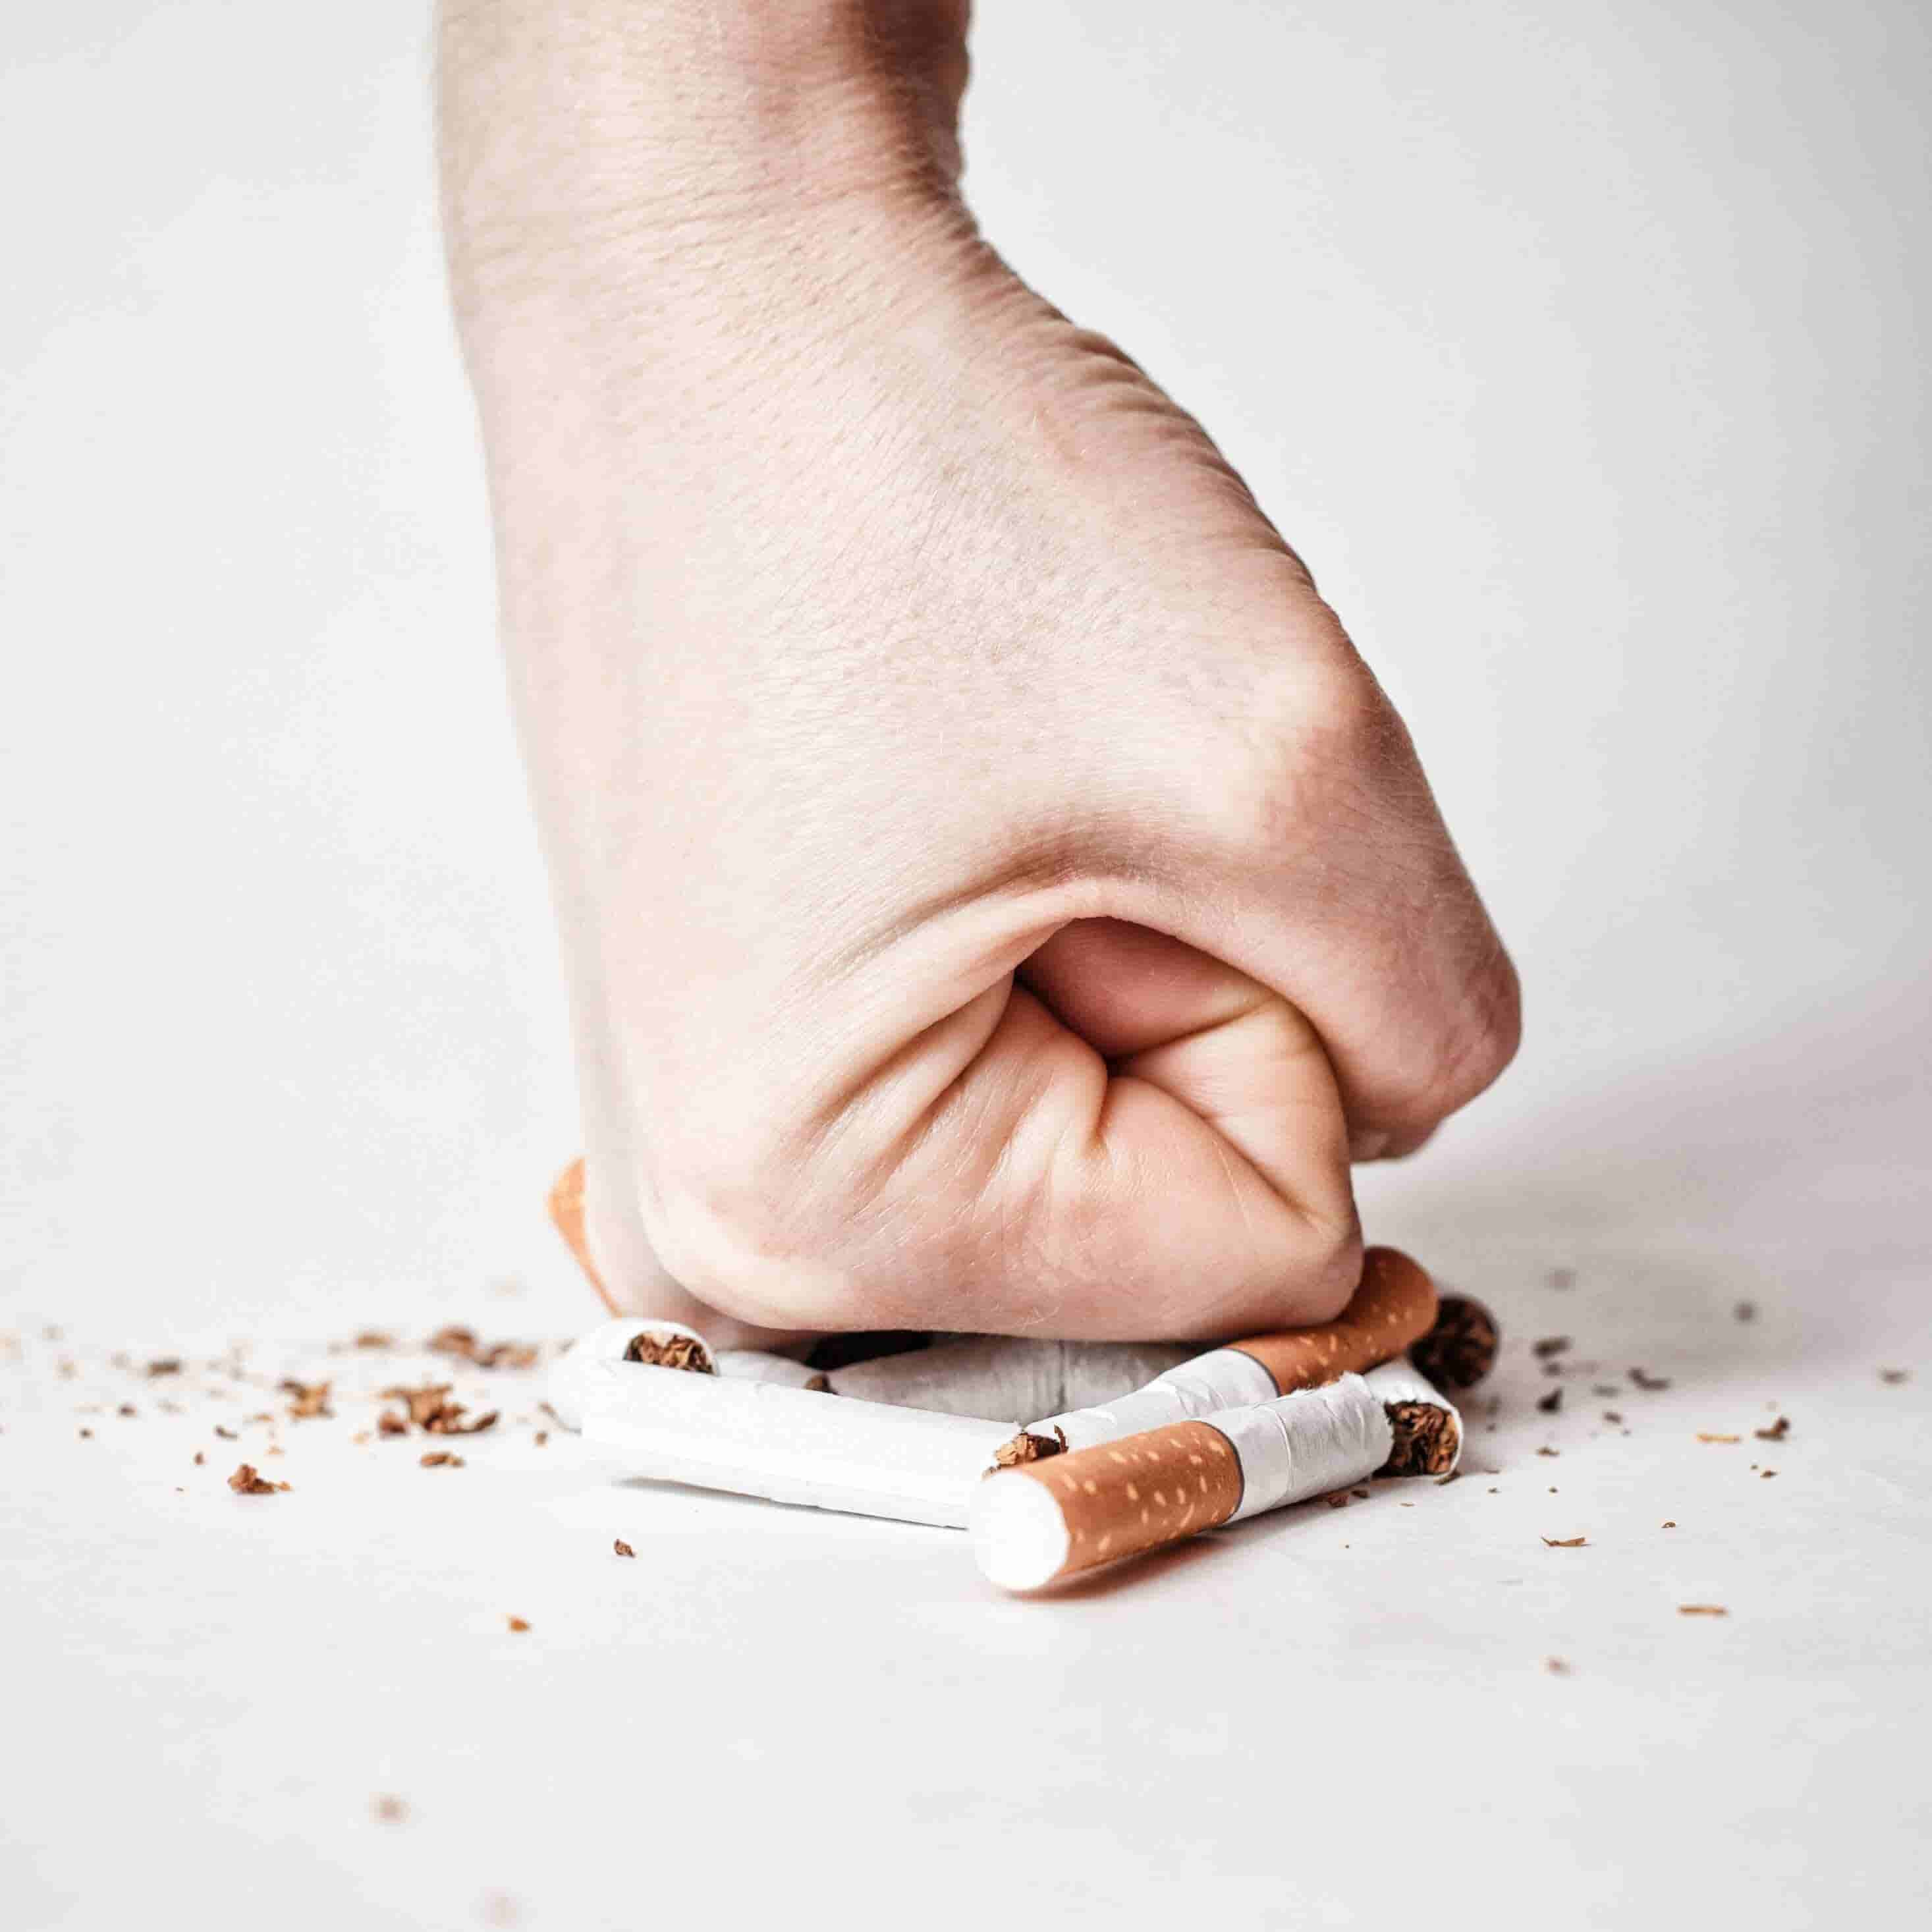 How Does Smoking Affect Your Skin?